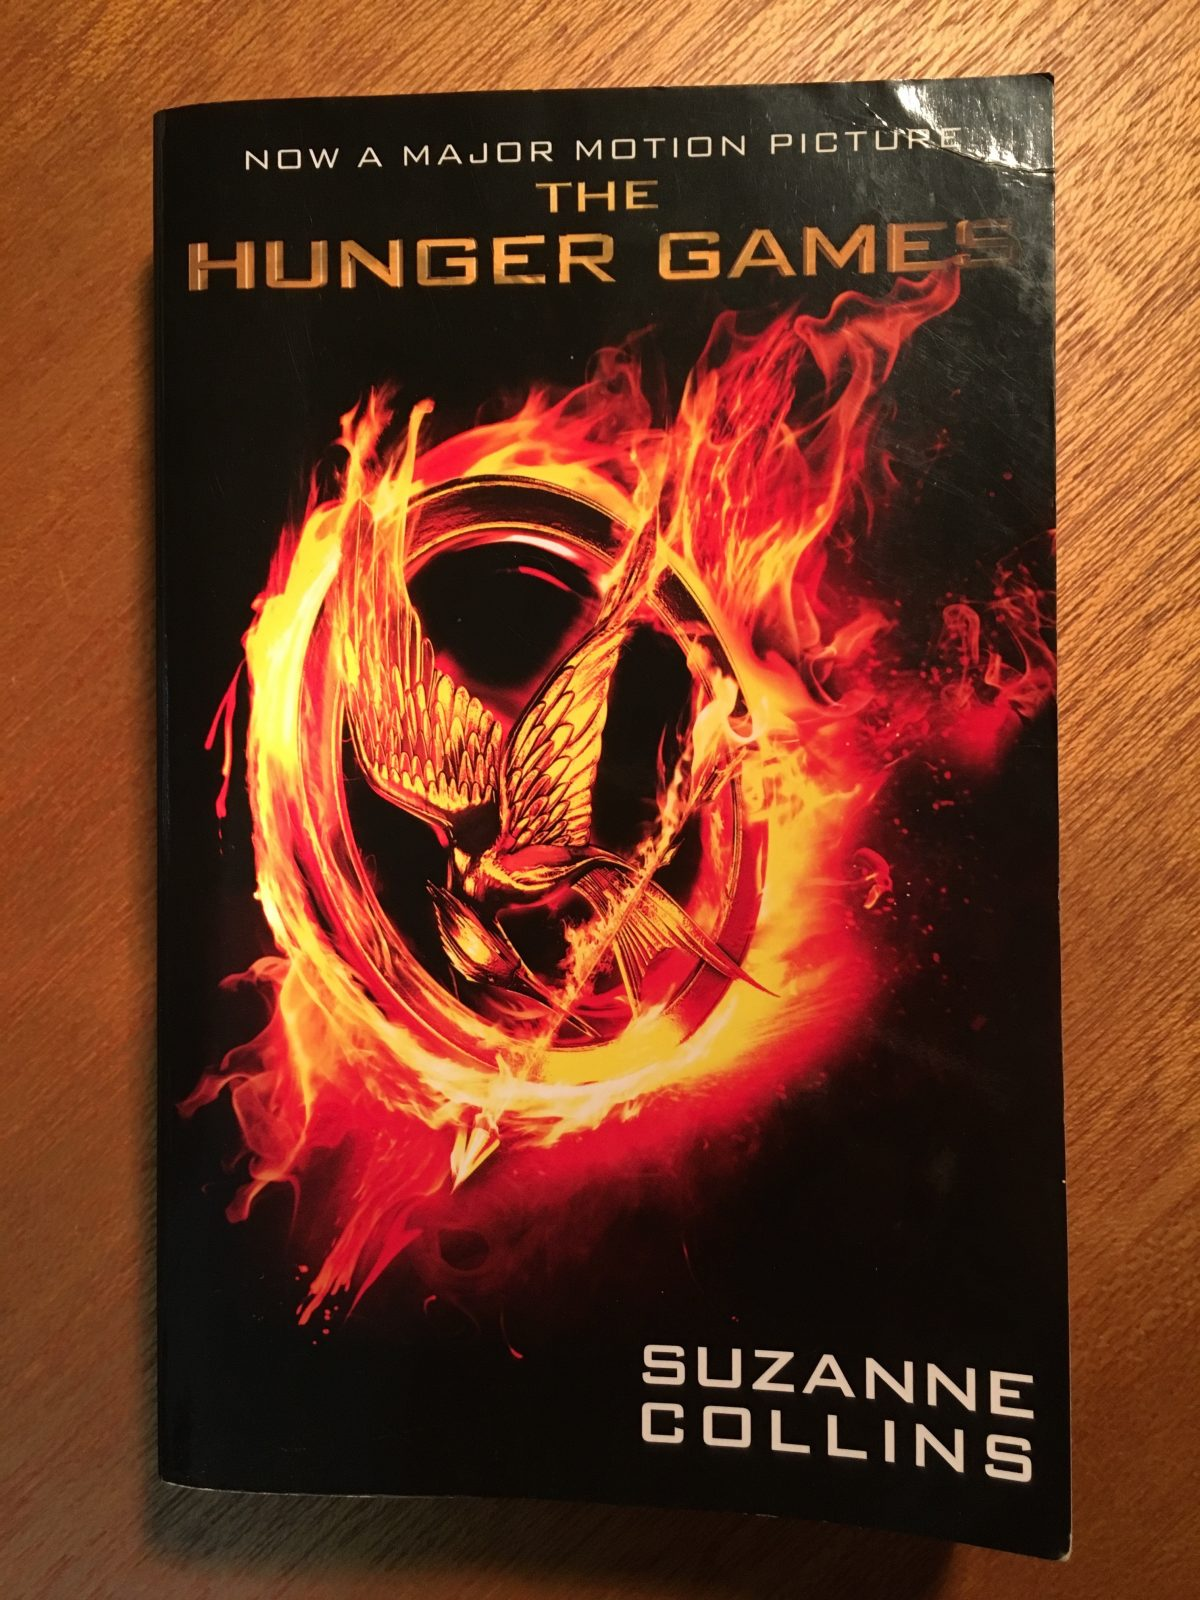 an analysis of the themes in the novel hunger games by suzanne collins Character analysis of the main characters in the hunger games the theme of humanity in the novel the hunger games by suzanne collins.